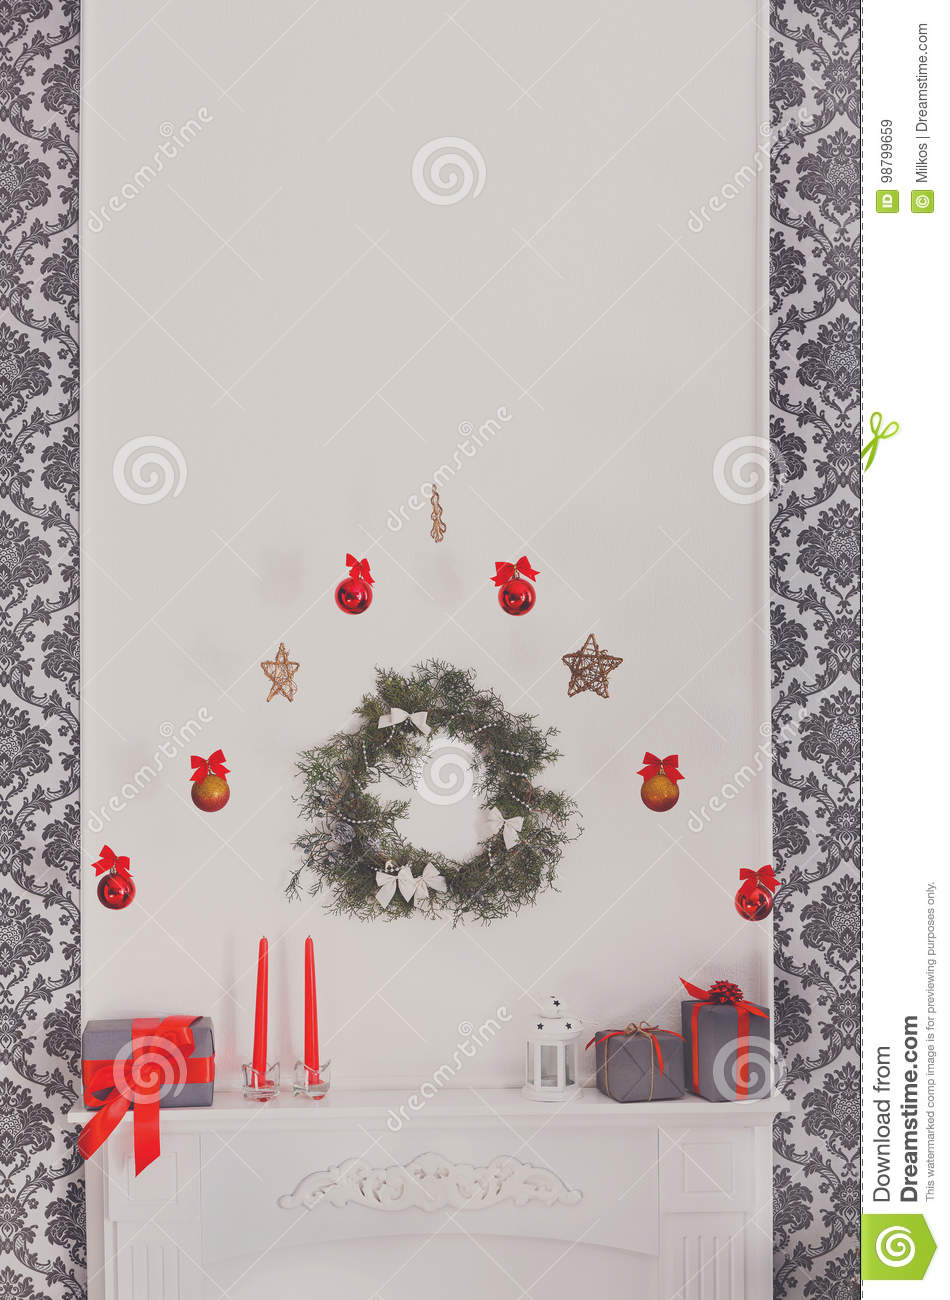 Christmas Decorated Fireplace In Modern Interior Holiday Concept